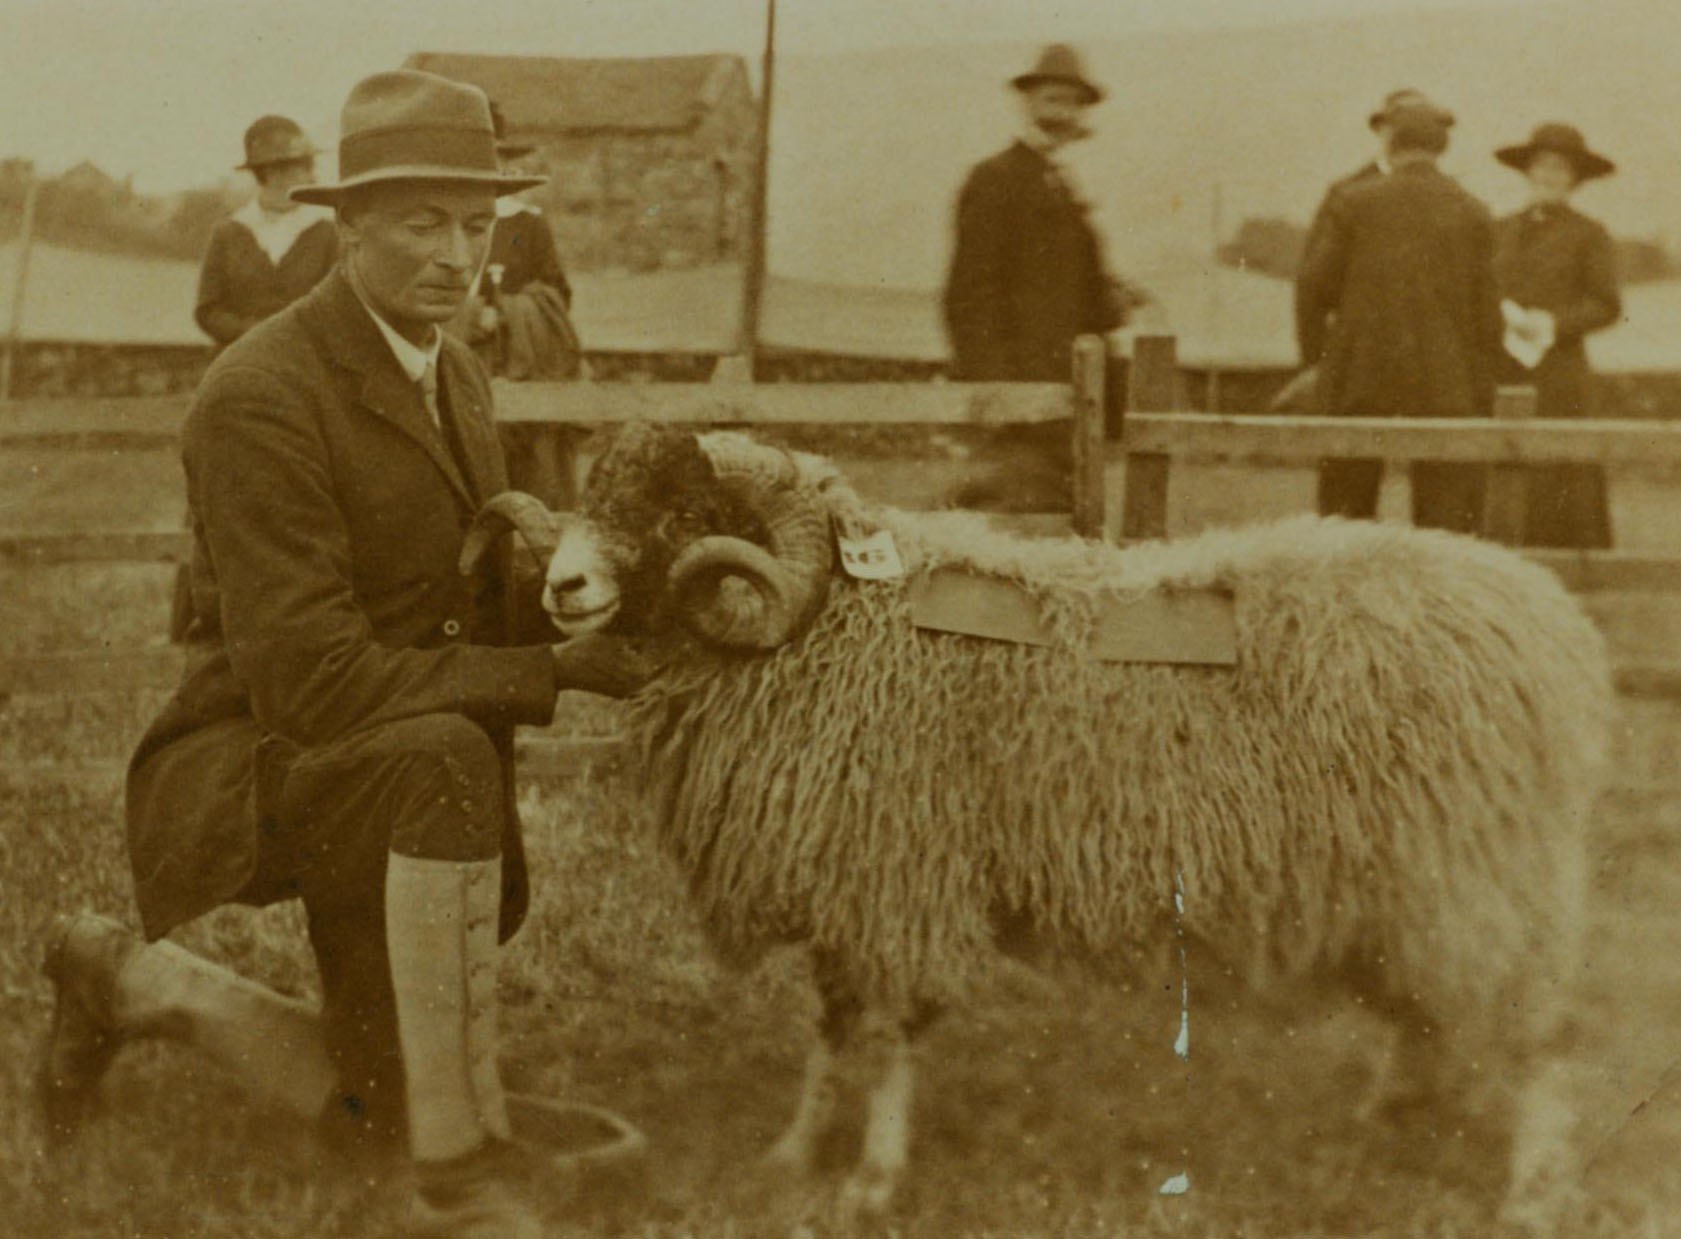 WHC and Yorkshire Film Archive collaborate on exhibition at Great Yorkshire Show 10 - 12 July 2018